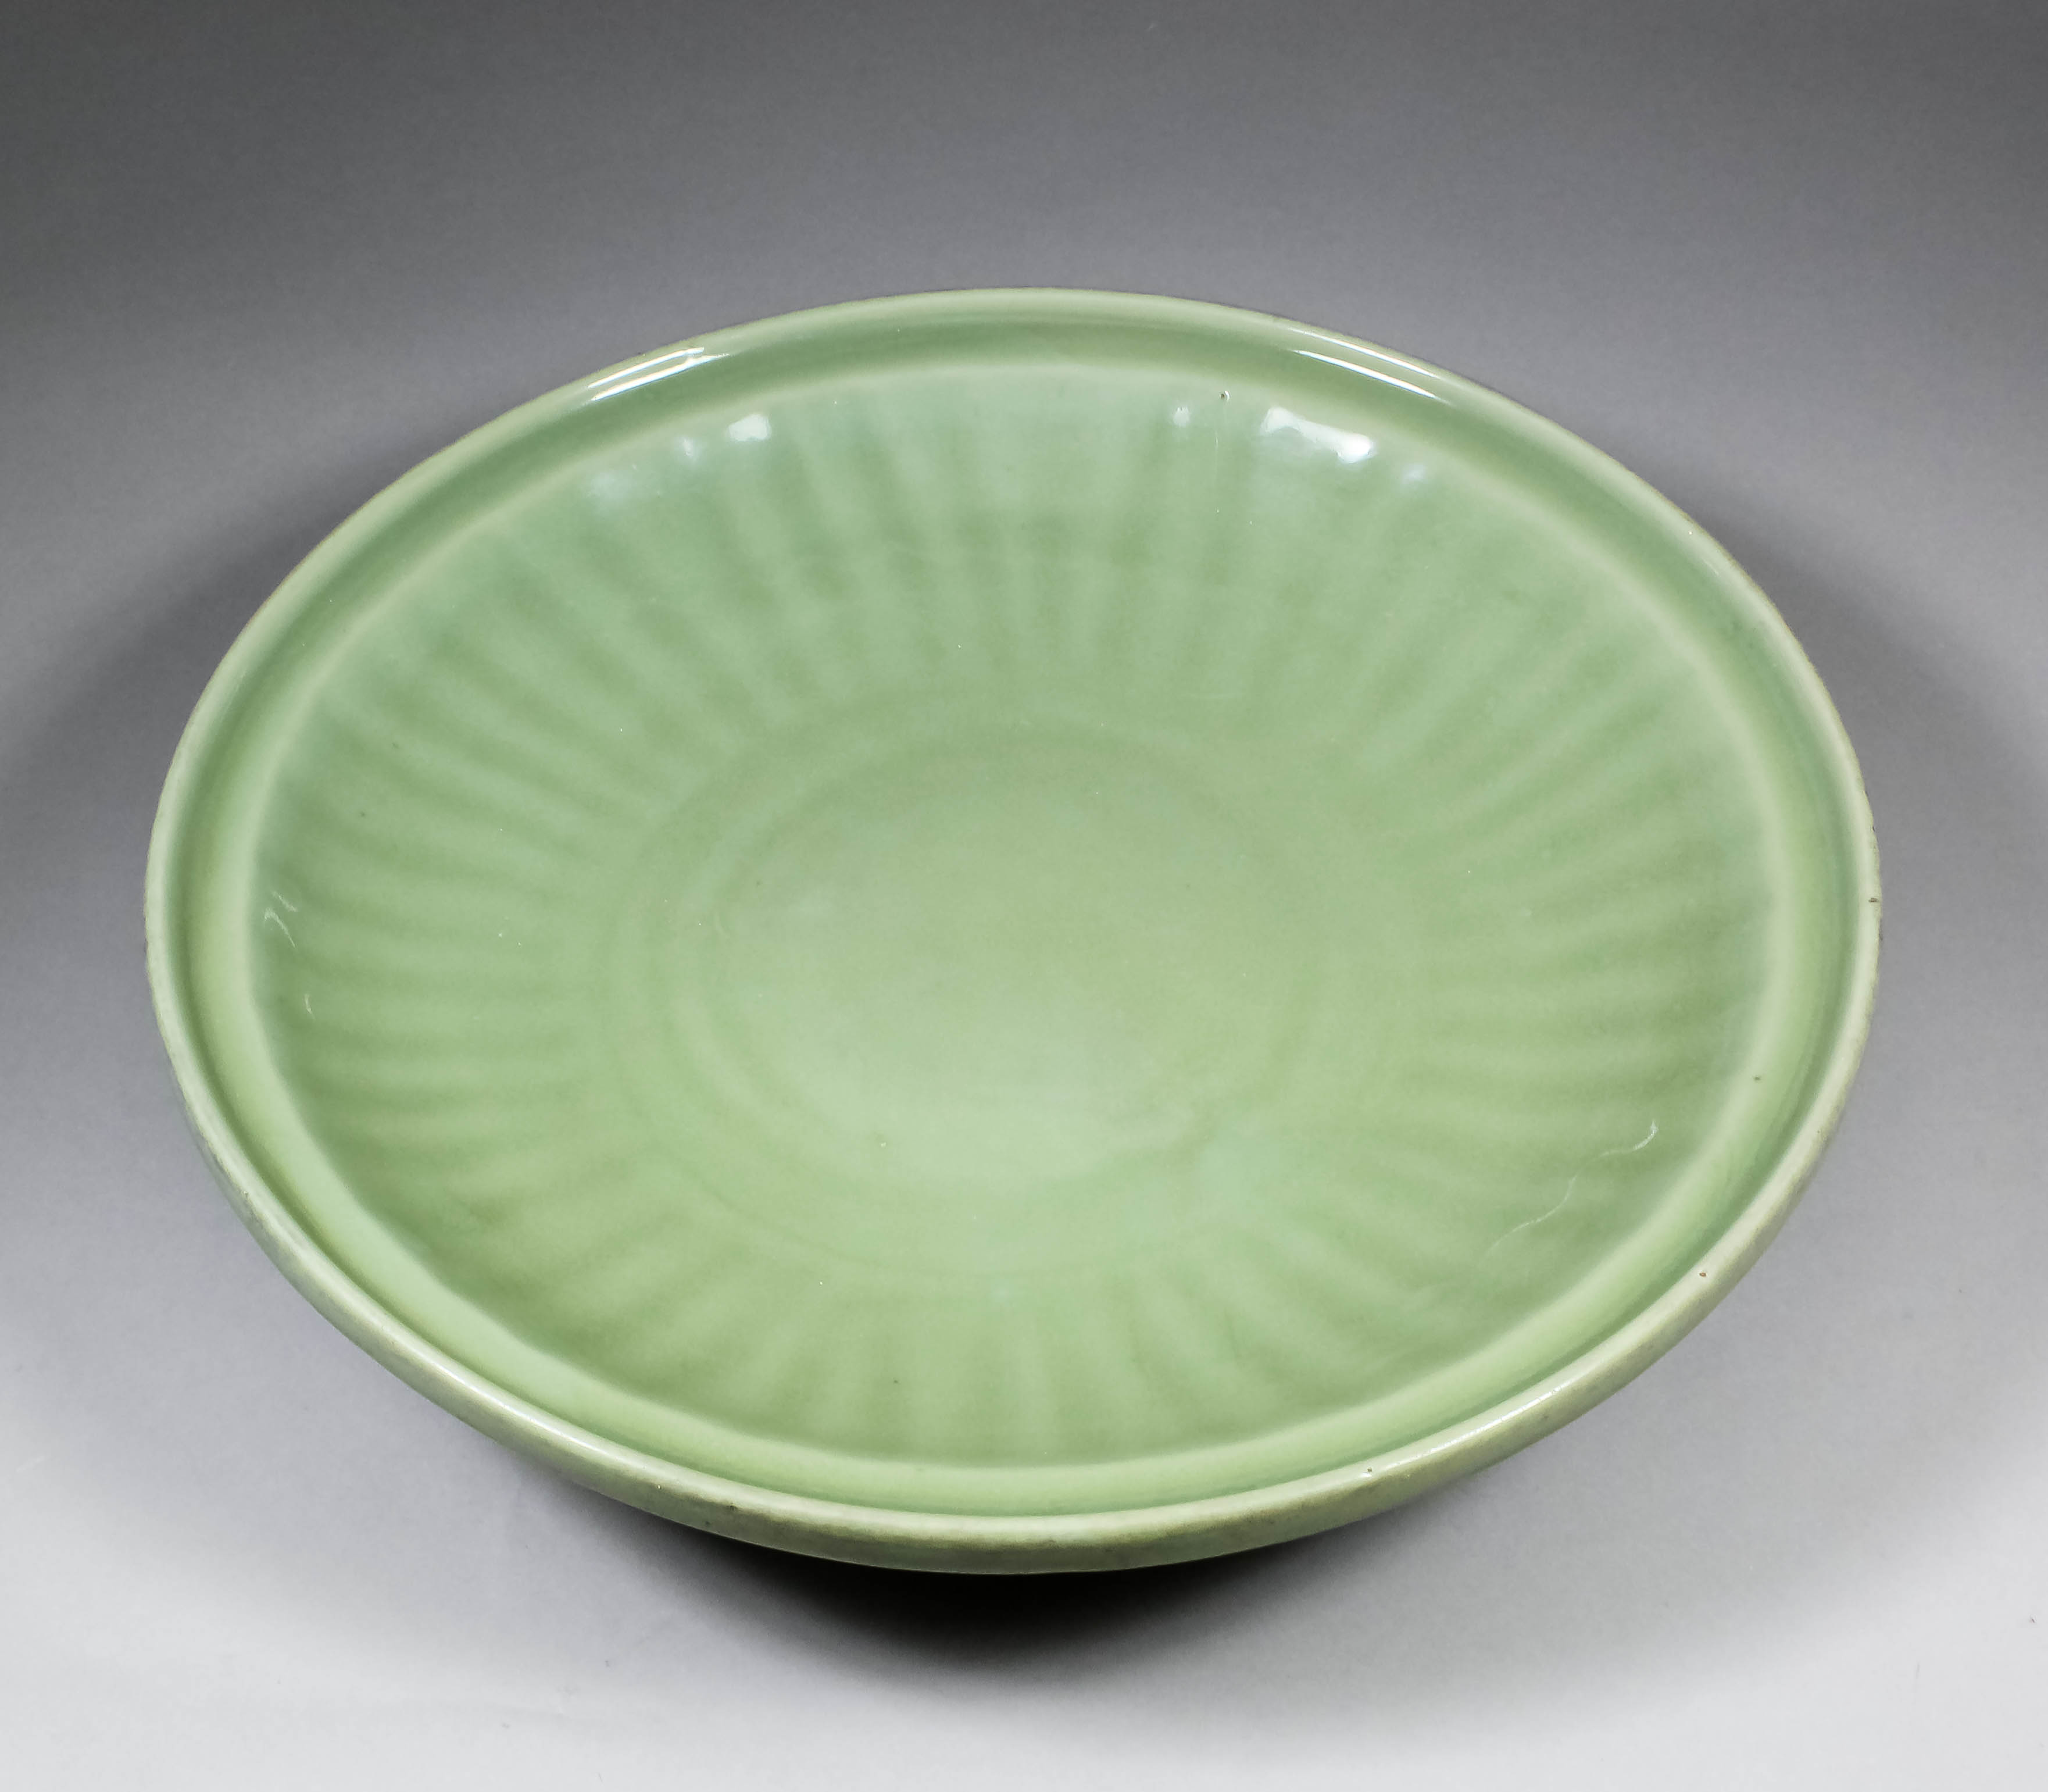 Lot 490 - A Chinese Longquan celadon glazed circular charger with fluted border and moulded rim, 15.75ins (